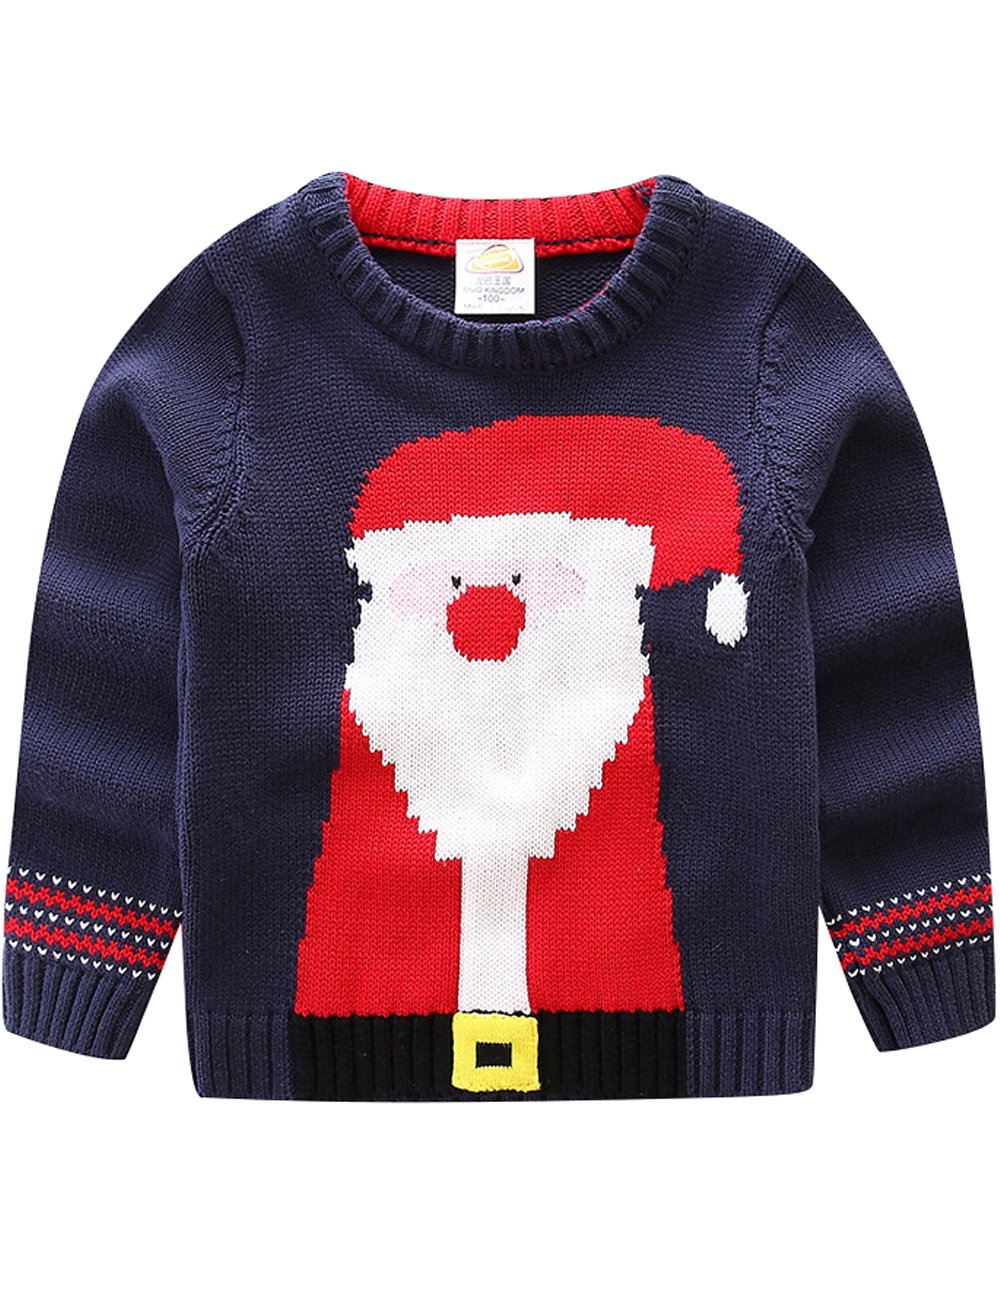 Zoulee Children's Fireplace Lovely Sweater For Christmas Best Gift Fit Style 1 Height:130cm//51.18''